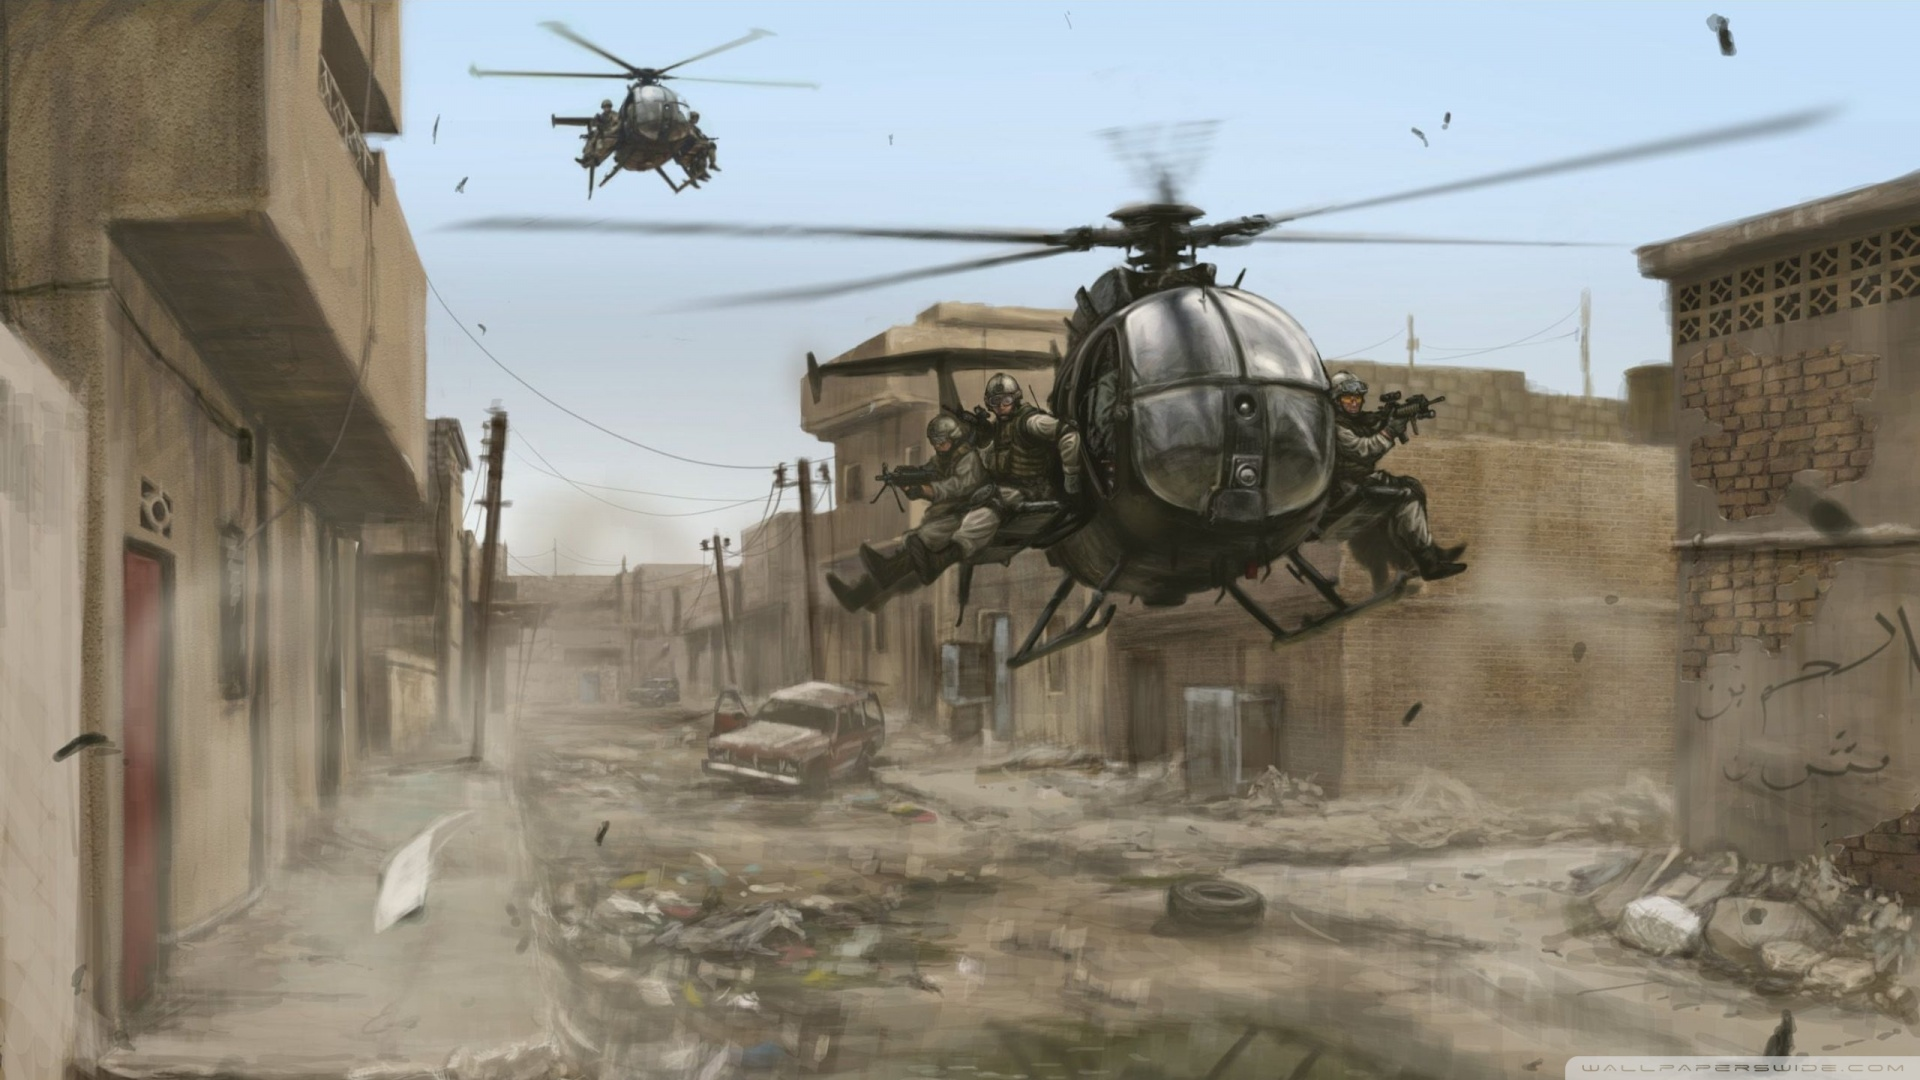 Military Helicopter 2 Wallpaper 1920x1080 Military Helicopter 2 1920x1080